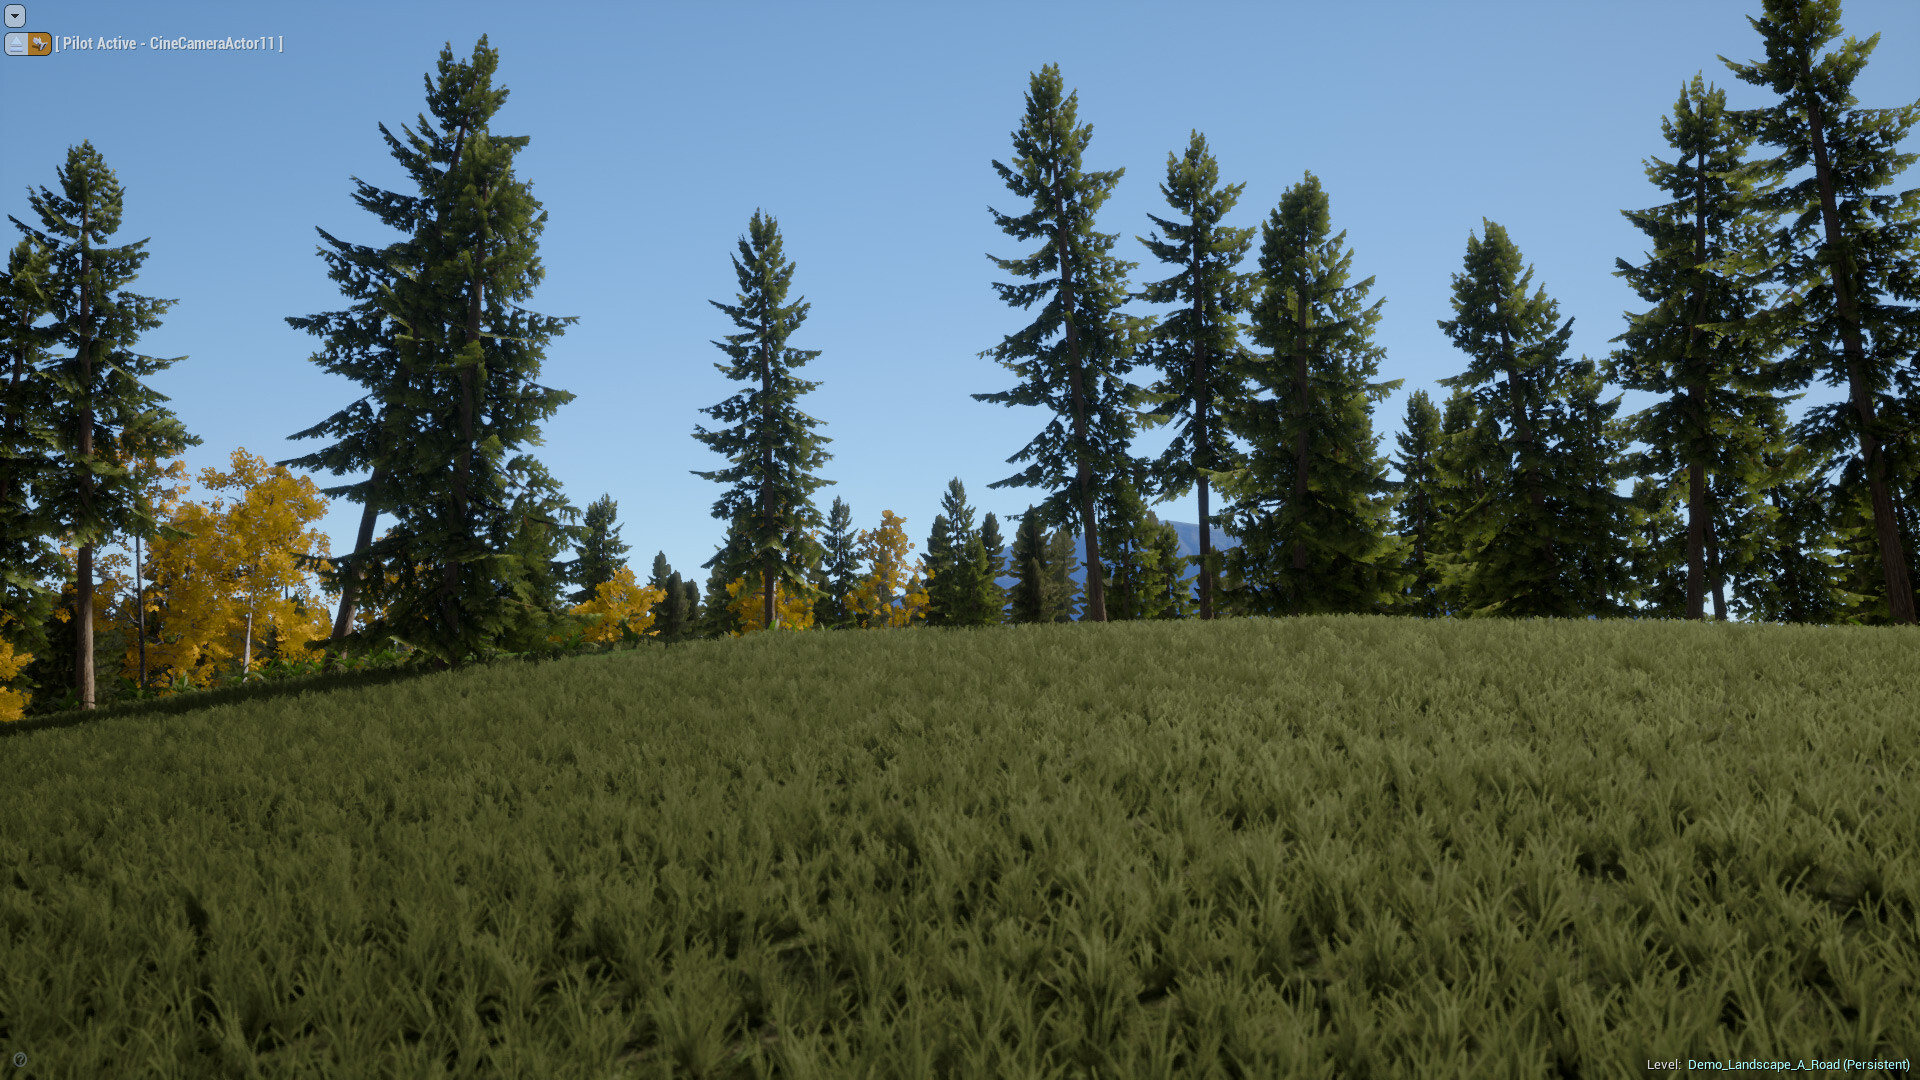 ArtStation - Realistic Forest Pack - Unreal Engine 4, Serif Can